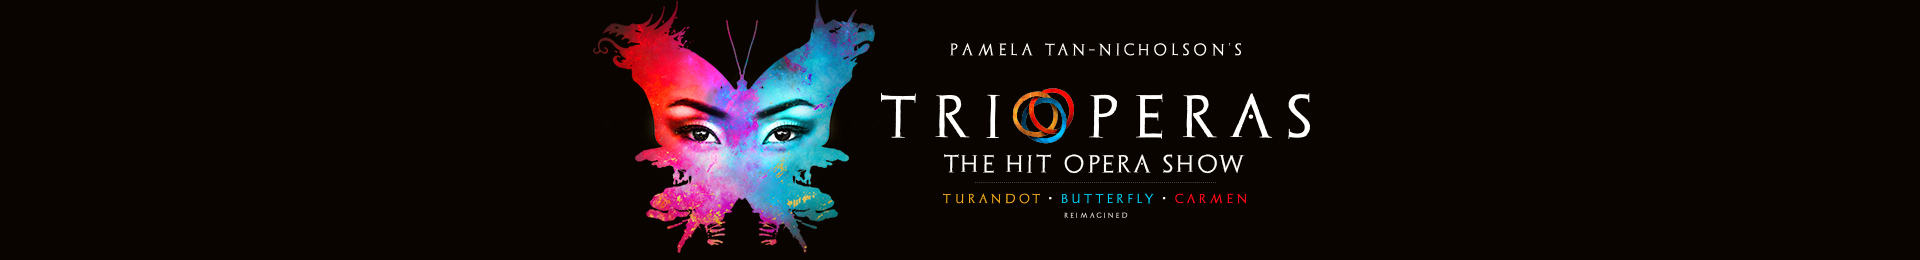 Introducing TriOperas: Turandot, Butterfly & Carmen